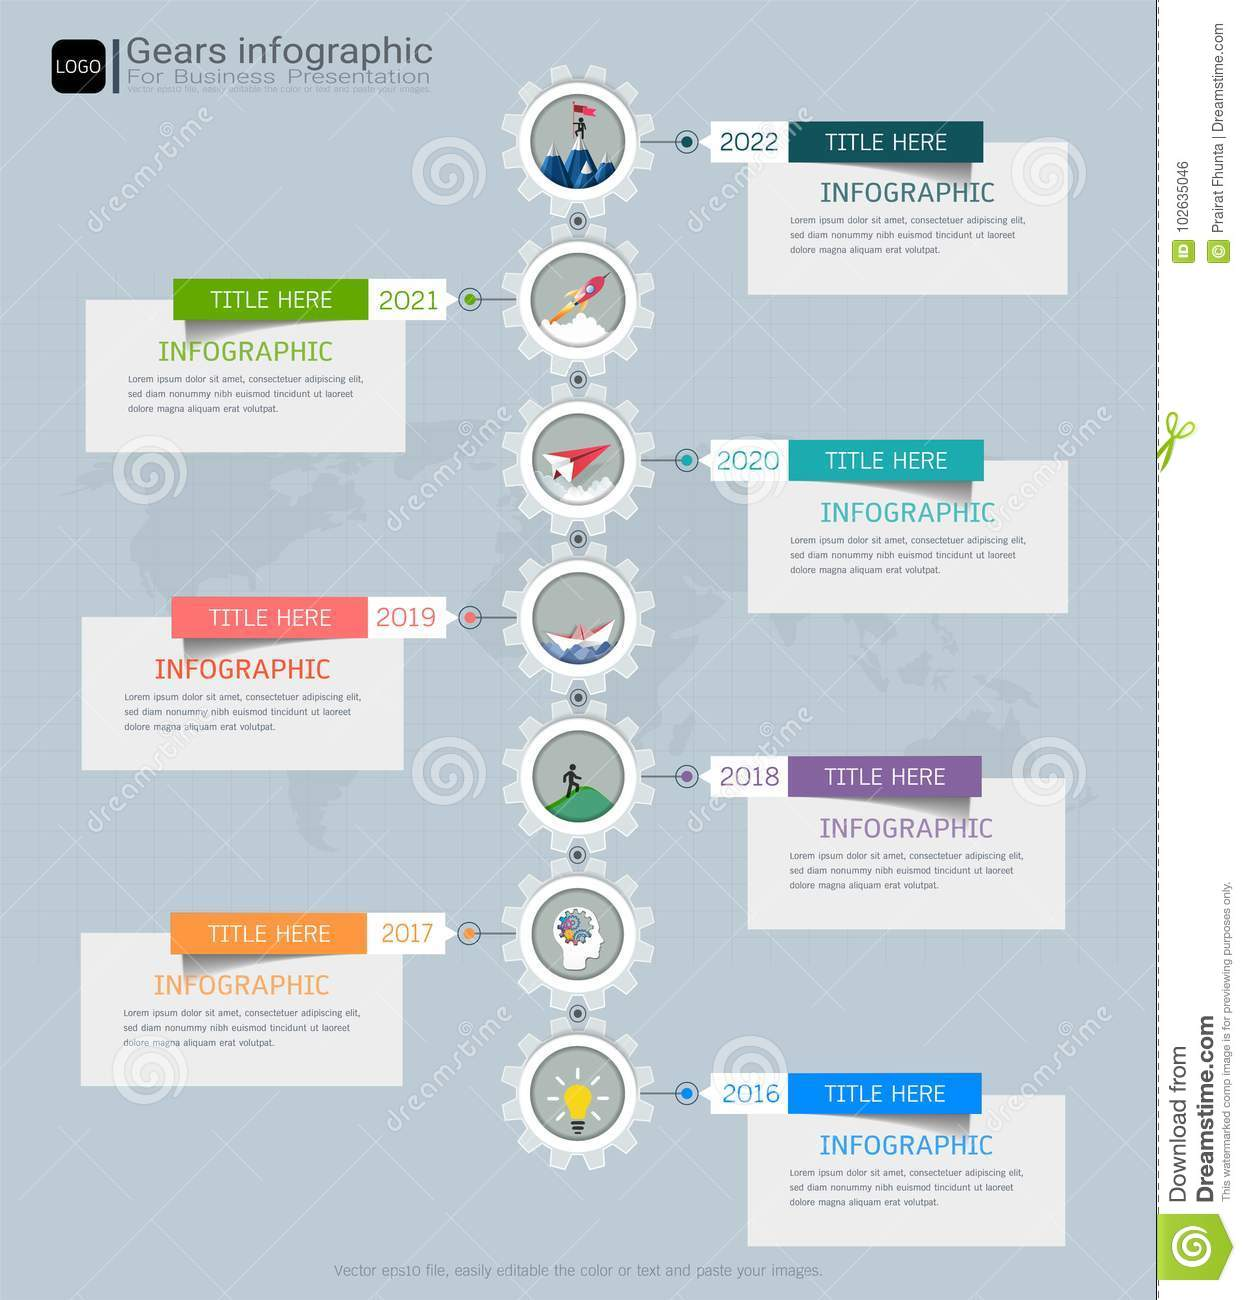 Gears infographic template for business presentation strategic plan gears infographic template for business presentation strategic plan to define company values friedricerecipe Images